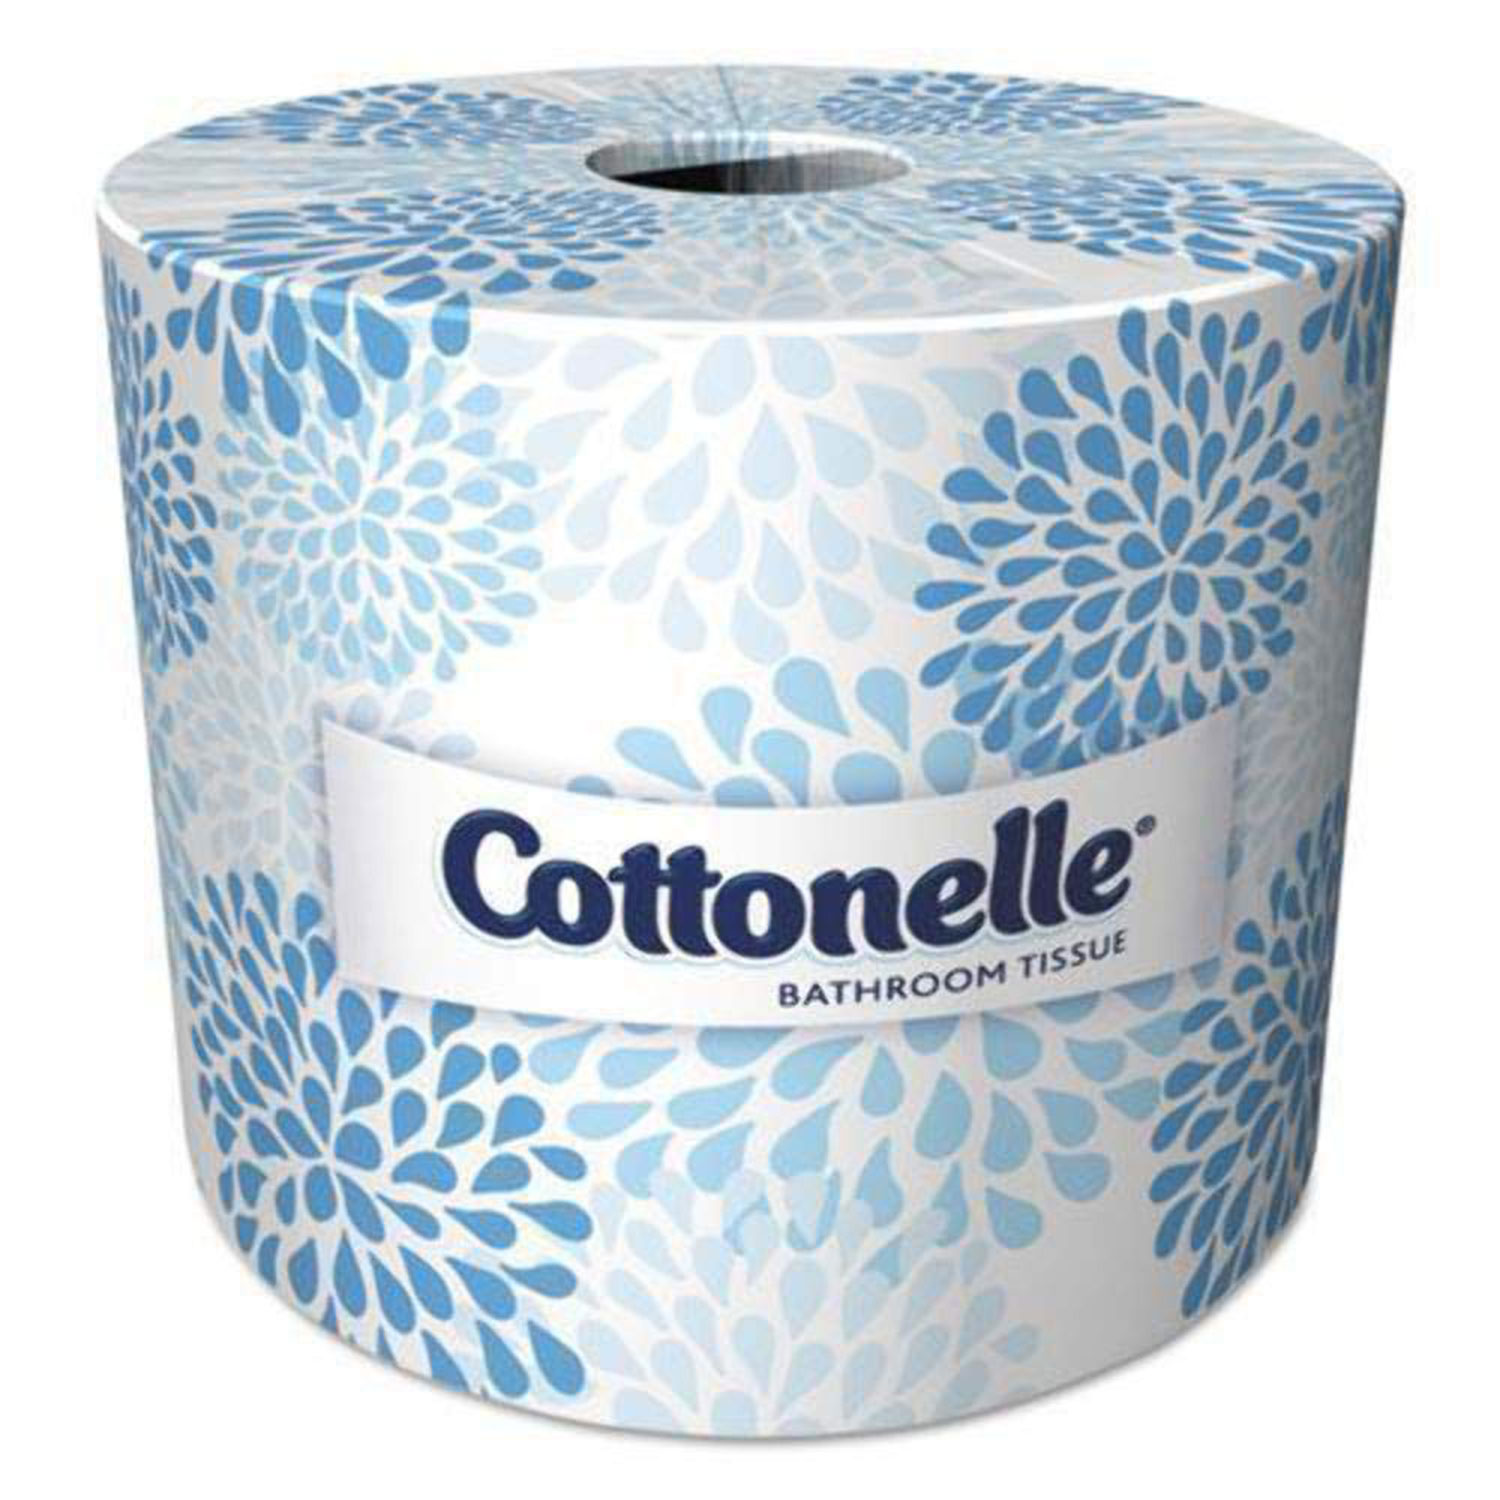 Cottonelle Professional Bulk Toilet Paper for Business